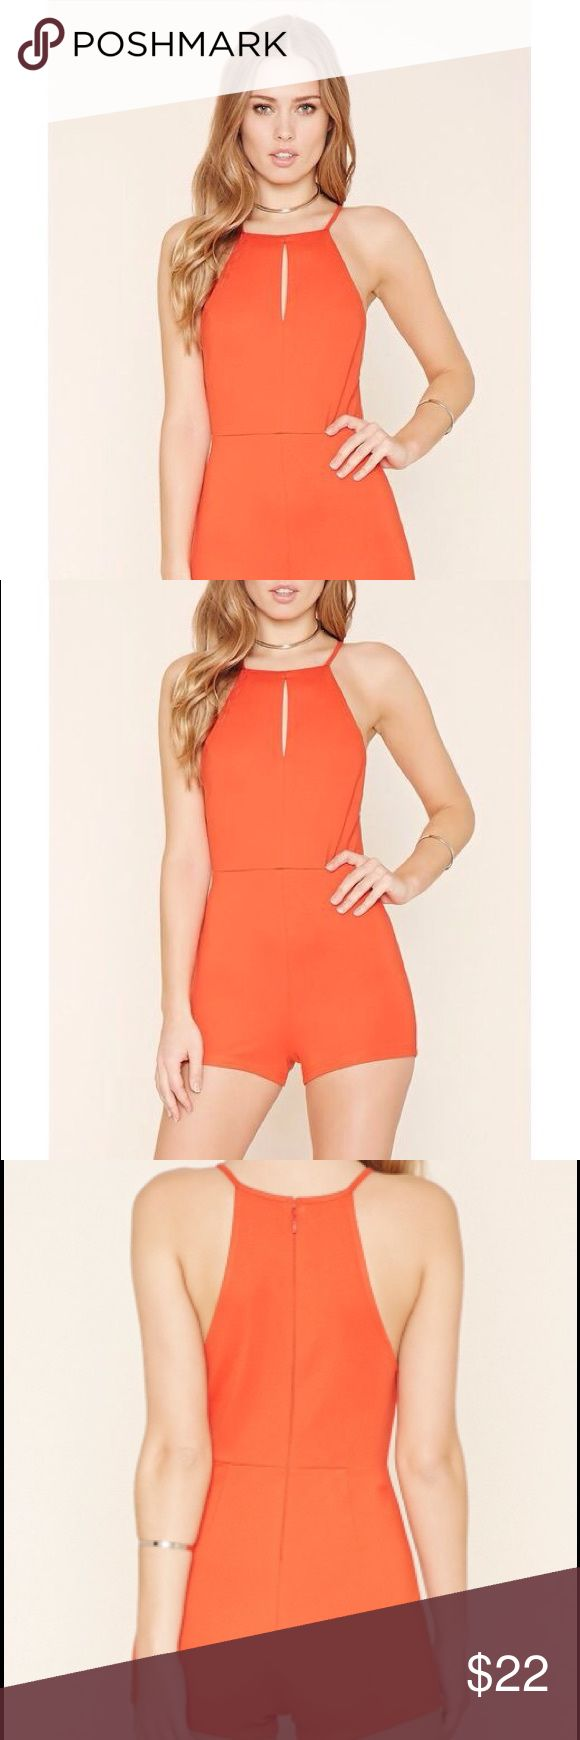 🆕Forever21 sexy jumper rope red tomato small Brand new without tags! Color is like red/orange tomato. Size: small. Looks exactly like the pictures. No flaws! Firm with price. Forever 21 Pants Jumpsuits & Rompers